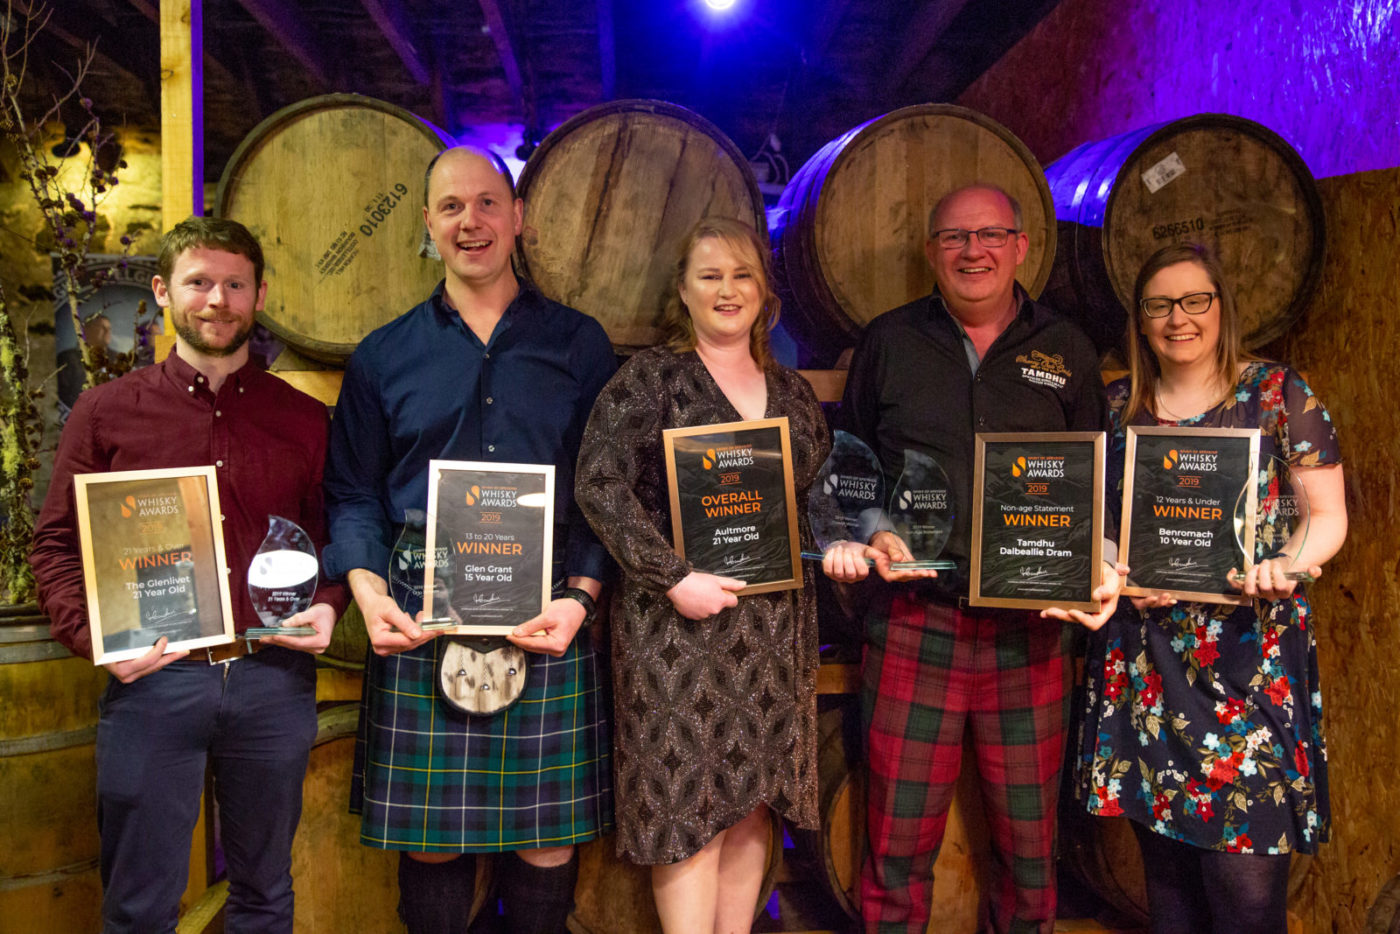 Spirit Of Speyside Whisky Award Winners Revealed photo